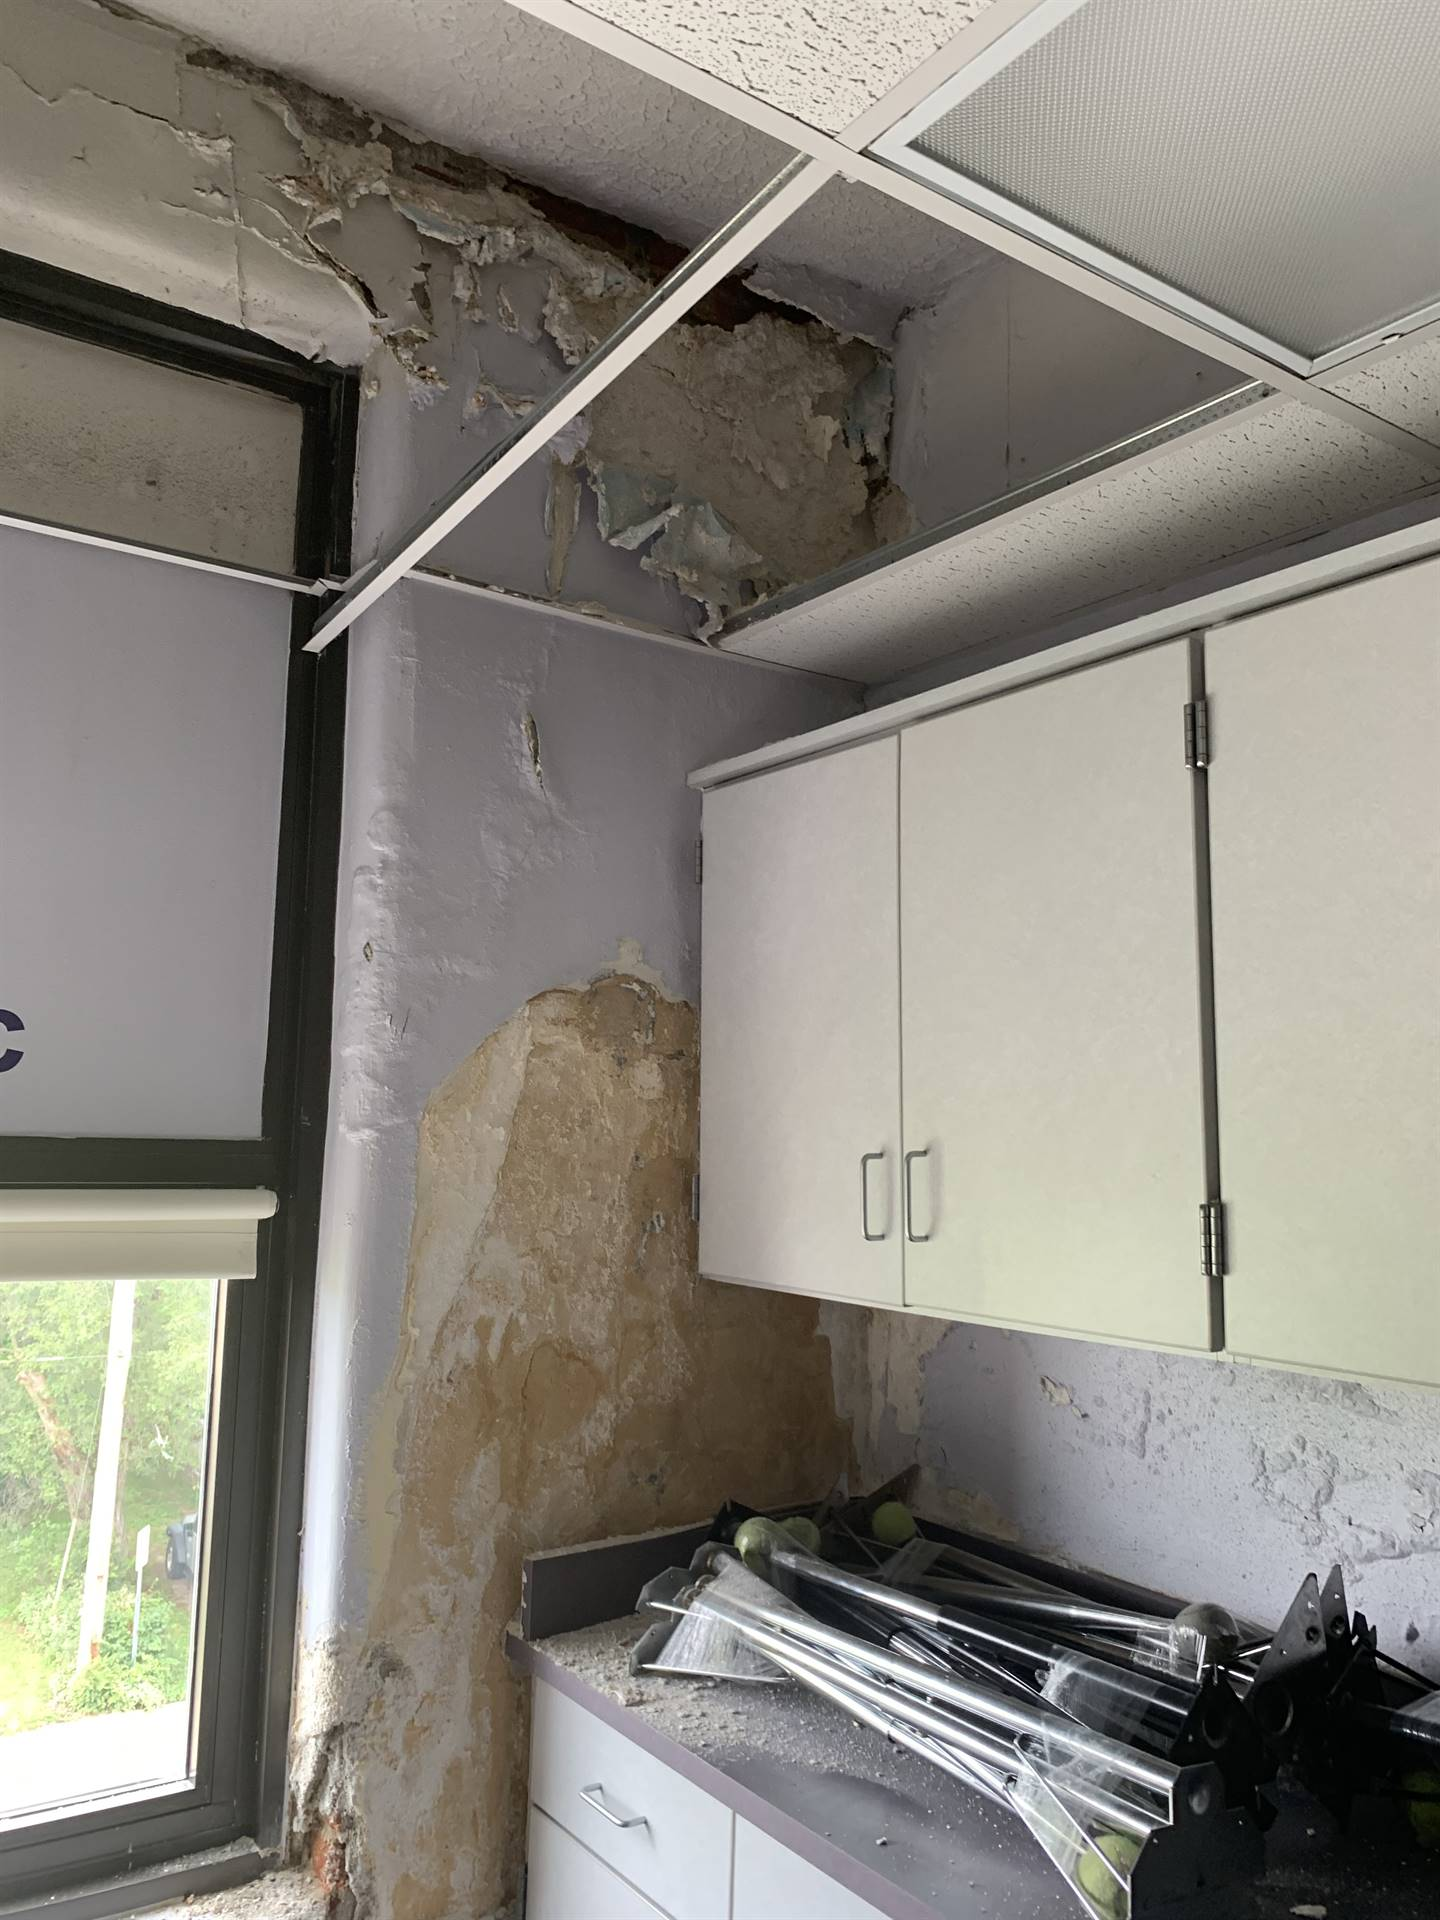 Ceiling and Wall damage